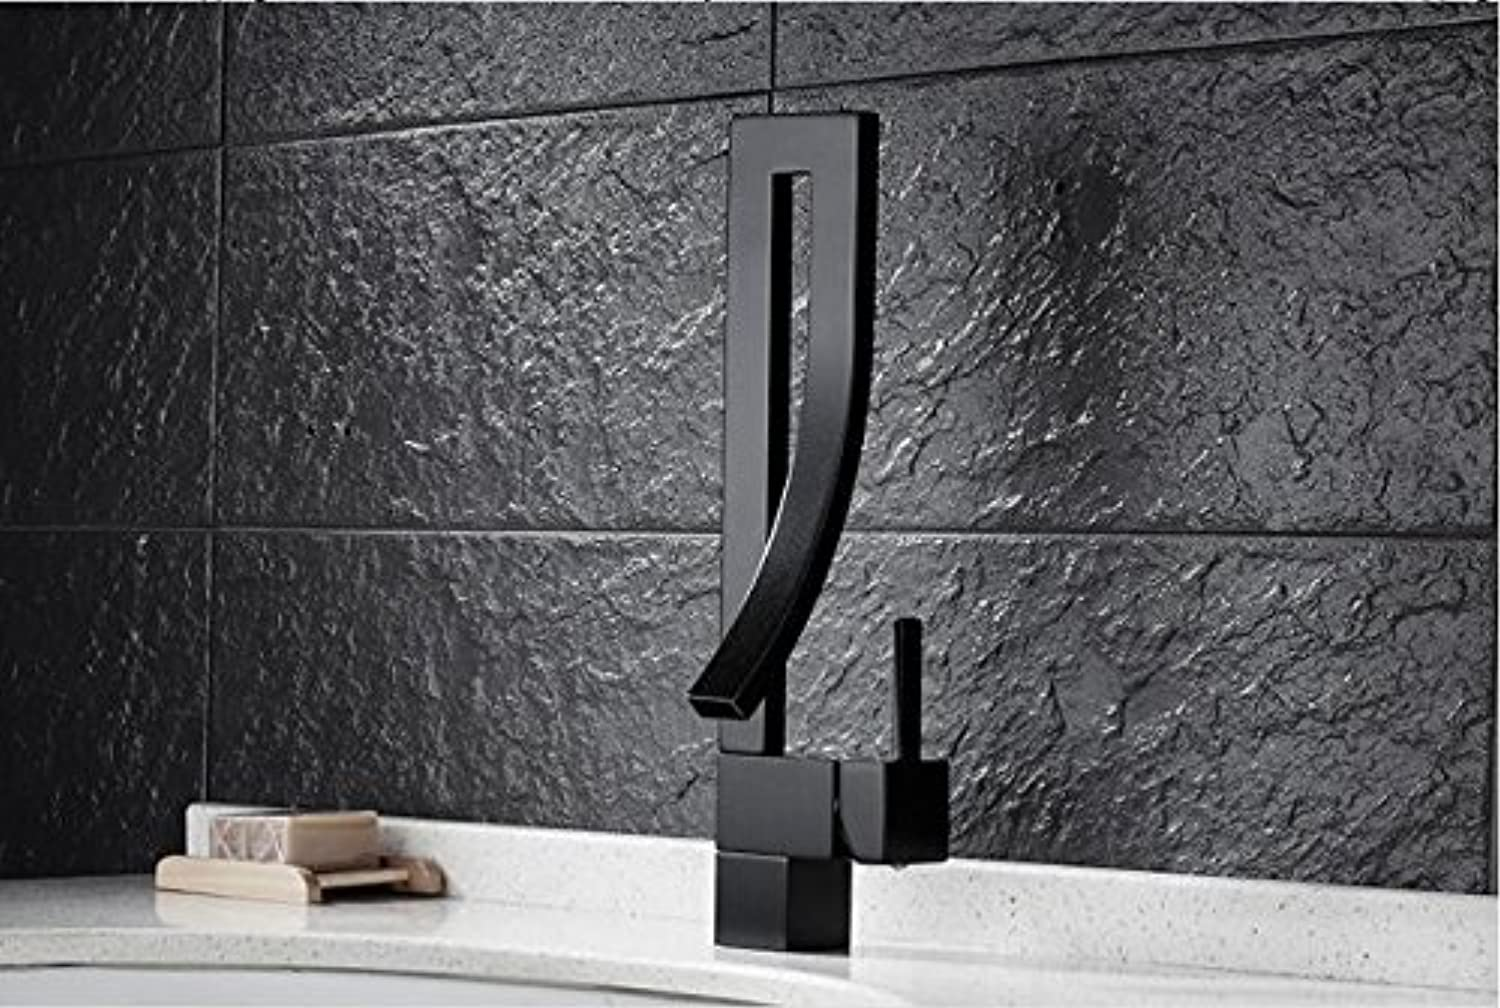 Aawang Deck Mount Black Curved Spout Basin Sink Faucet Creative Design Bathroom Mixers With Hot And Cold Water Lavatory Sink Taps Black